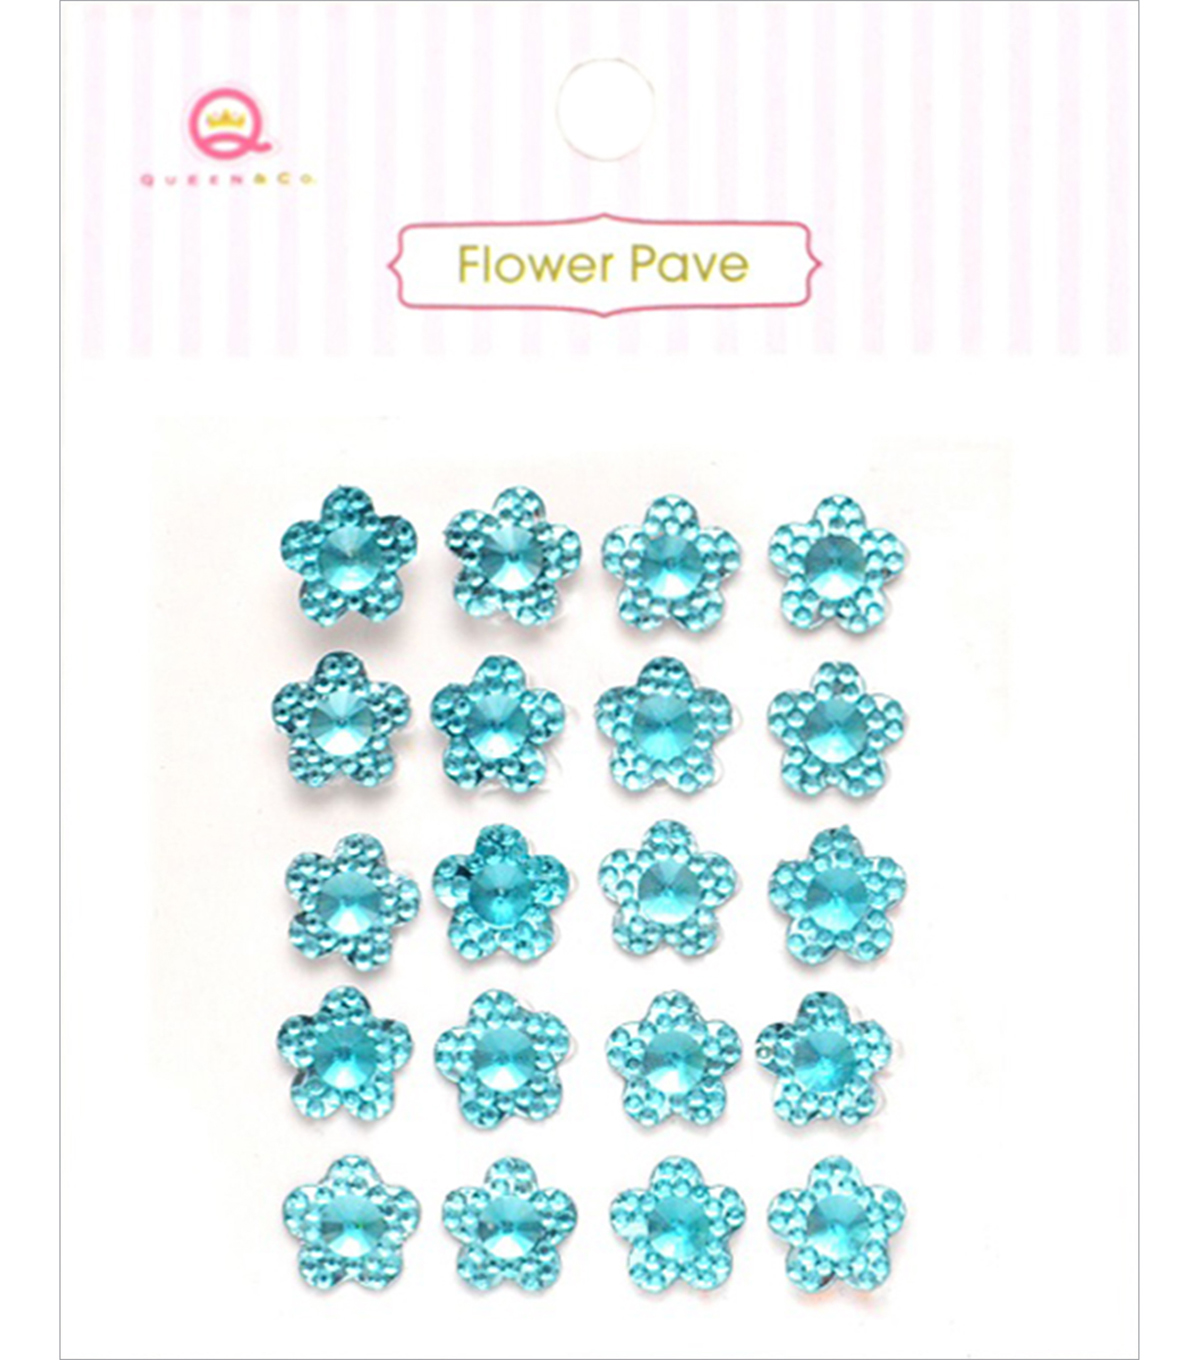 Queen & Co Flower Pave Adhesive Crystal Embellishments